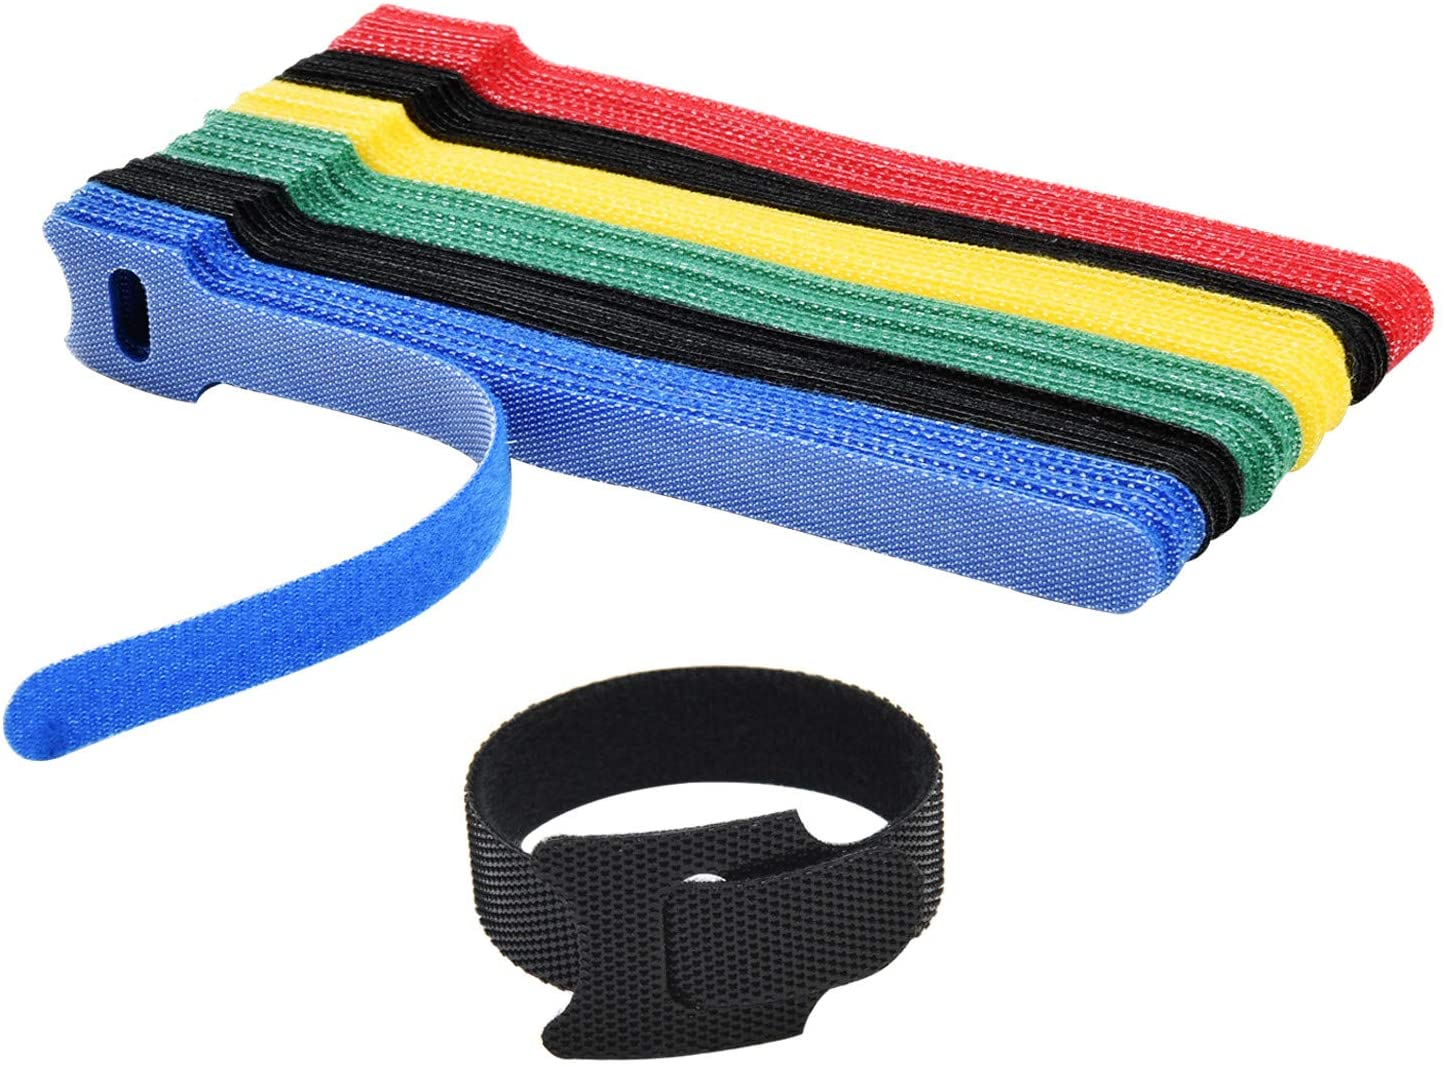 Hmrope Cable Ties